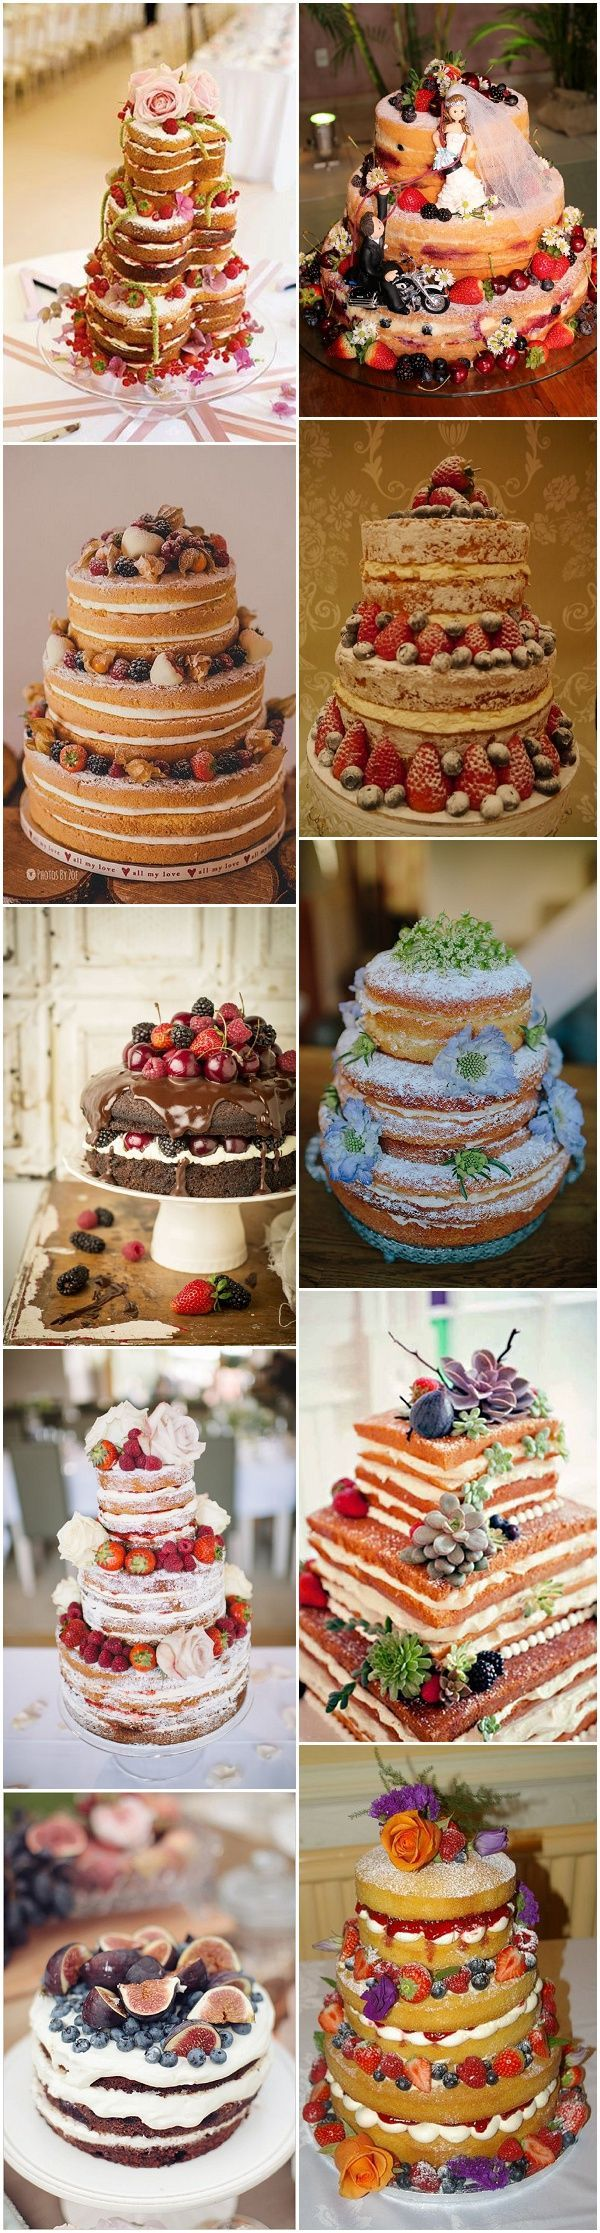 Let them eat cake rustic wedding chic - Naked Wedding Cake What Is Happening Everyone Seem To Be Wanting A Cake Like This Is Icing A Thing Of The Past Norahx Un Nuevo Estilo De Pastel